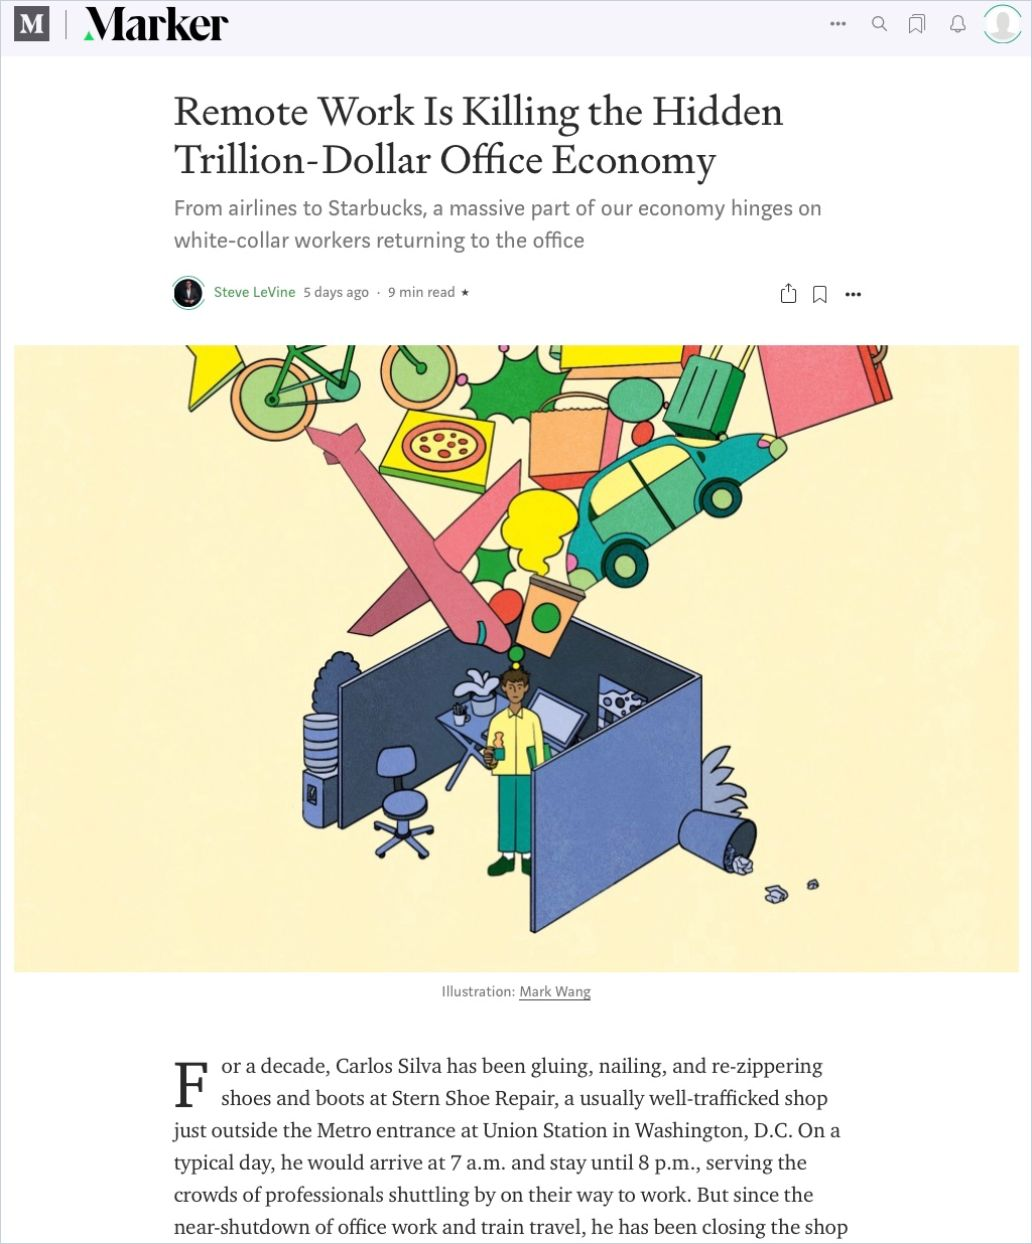 Image of: Remote Work Is Killing the Hidden Trillion-Dollar Office Economy